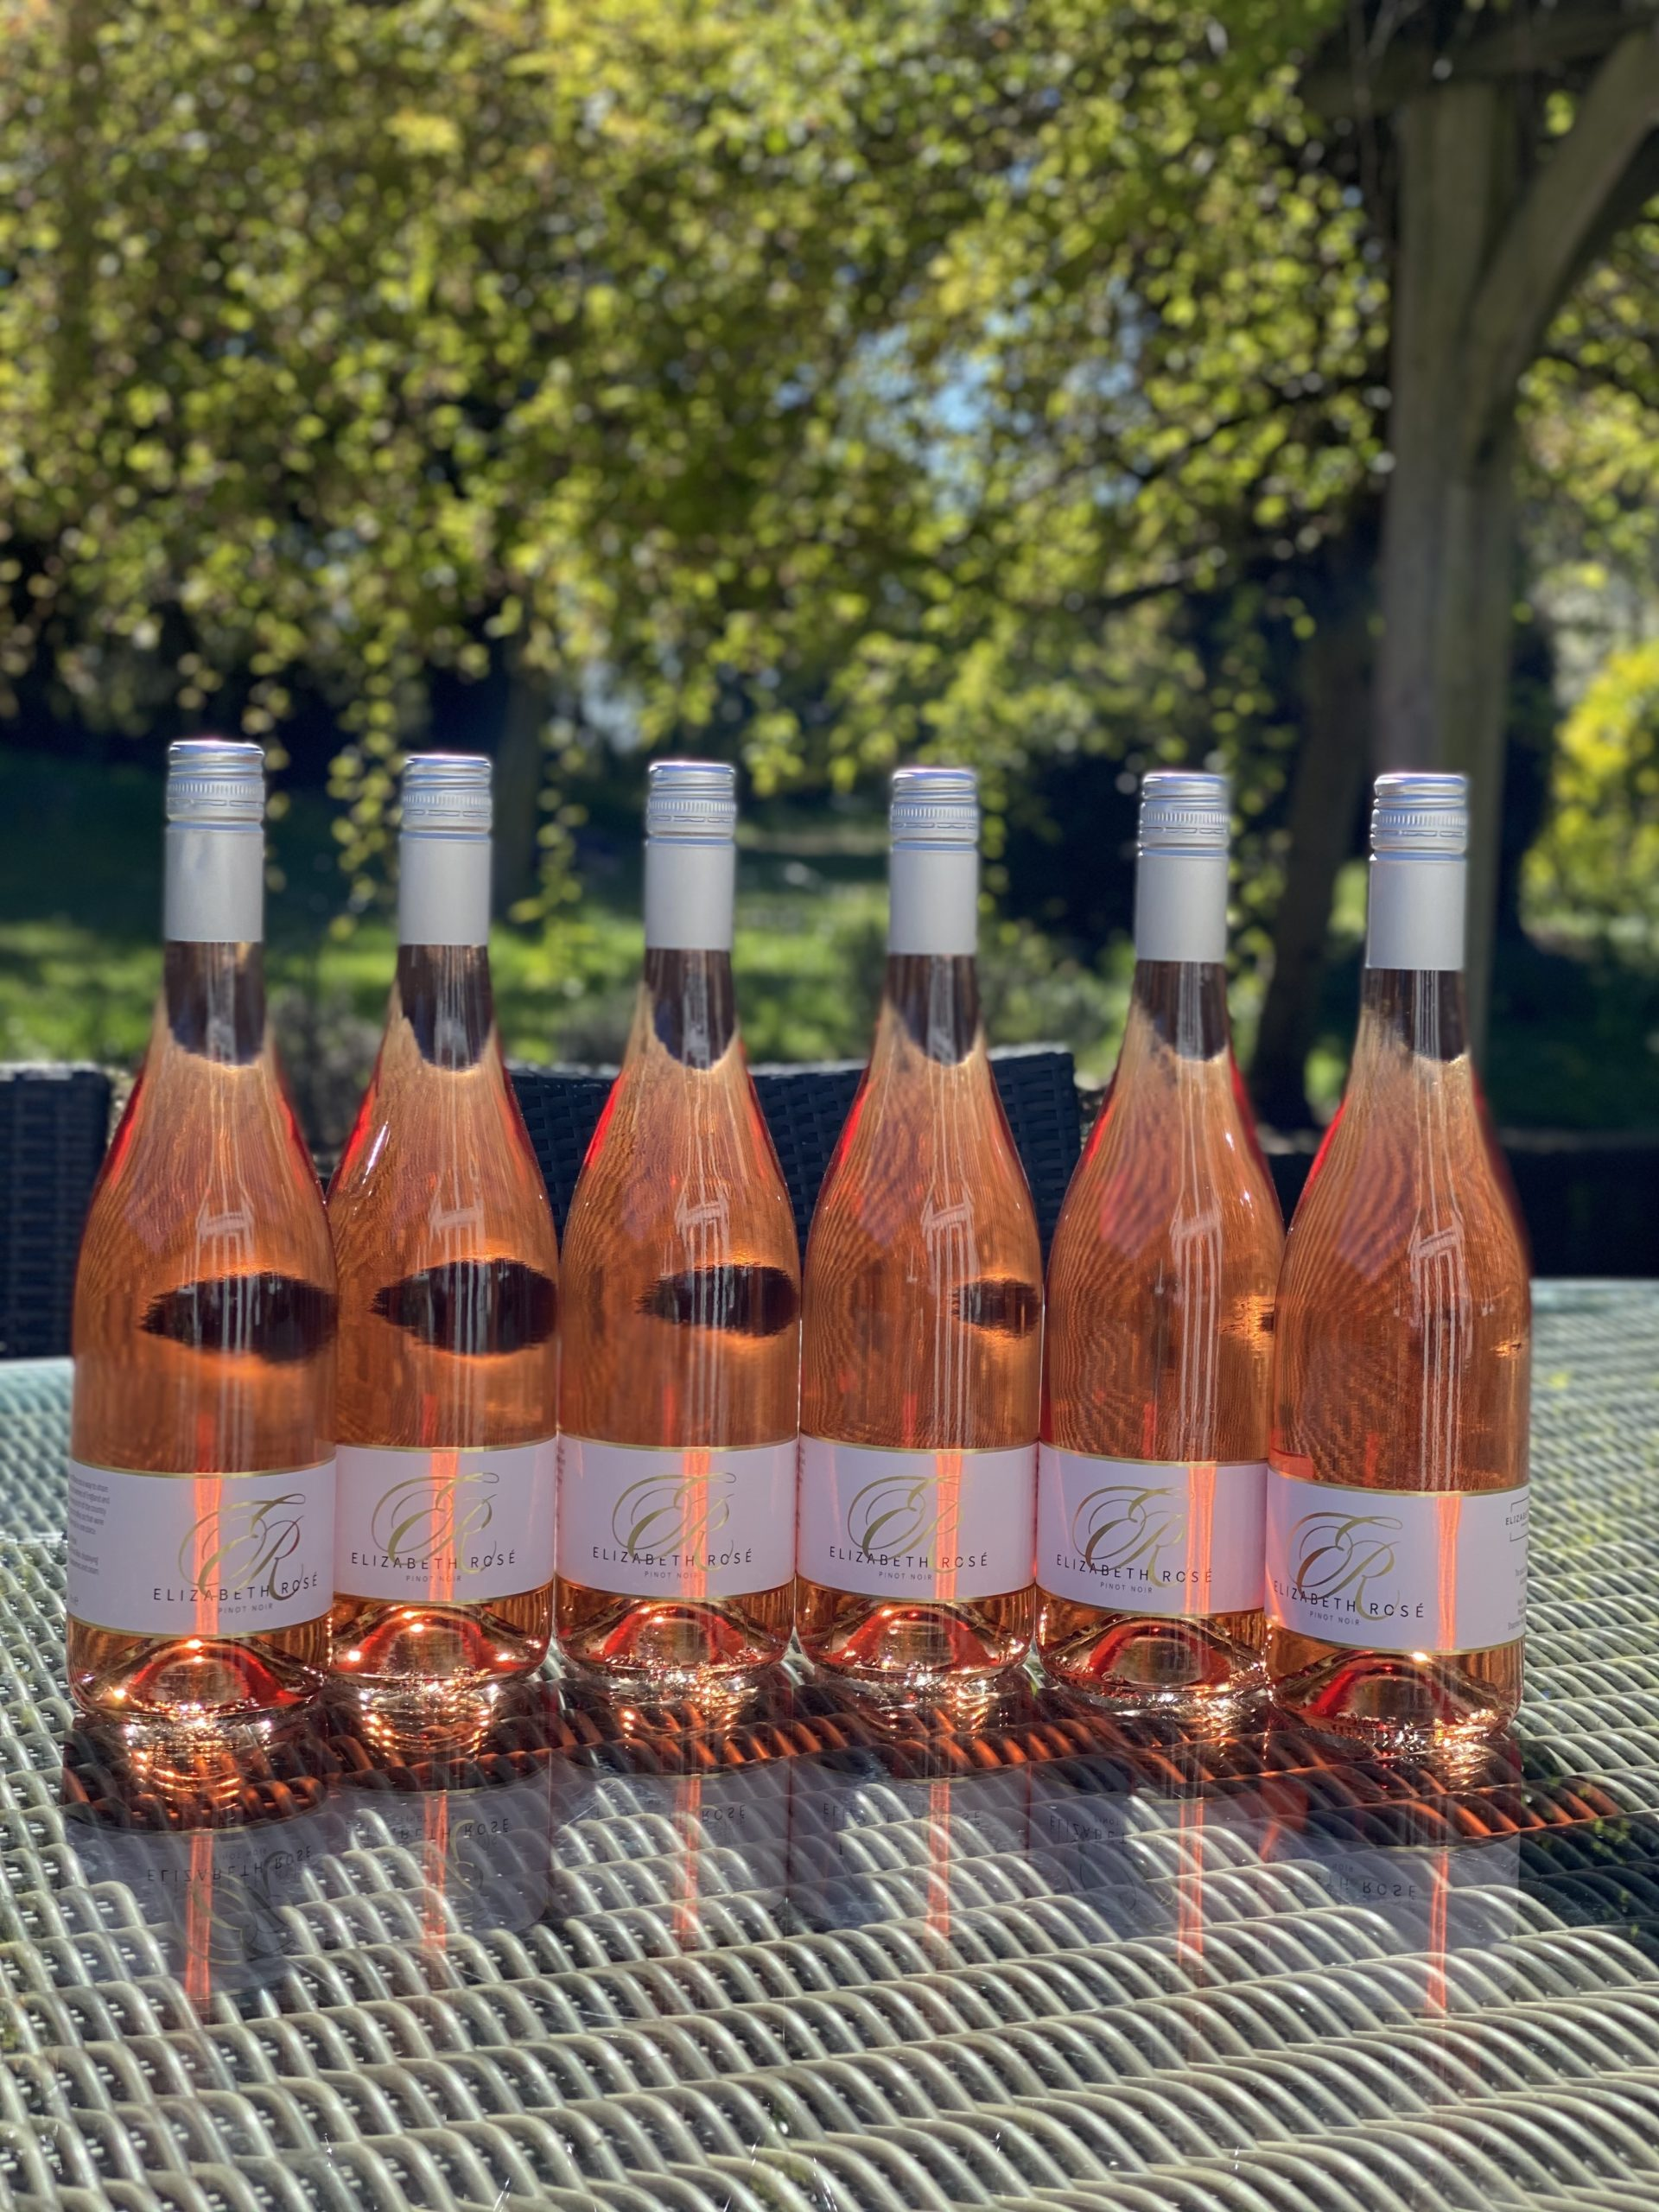 A case of the best English Rose wine